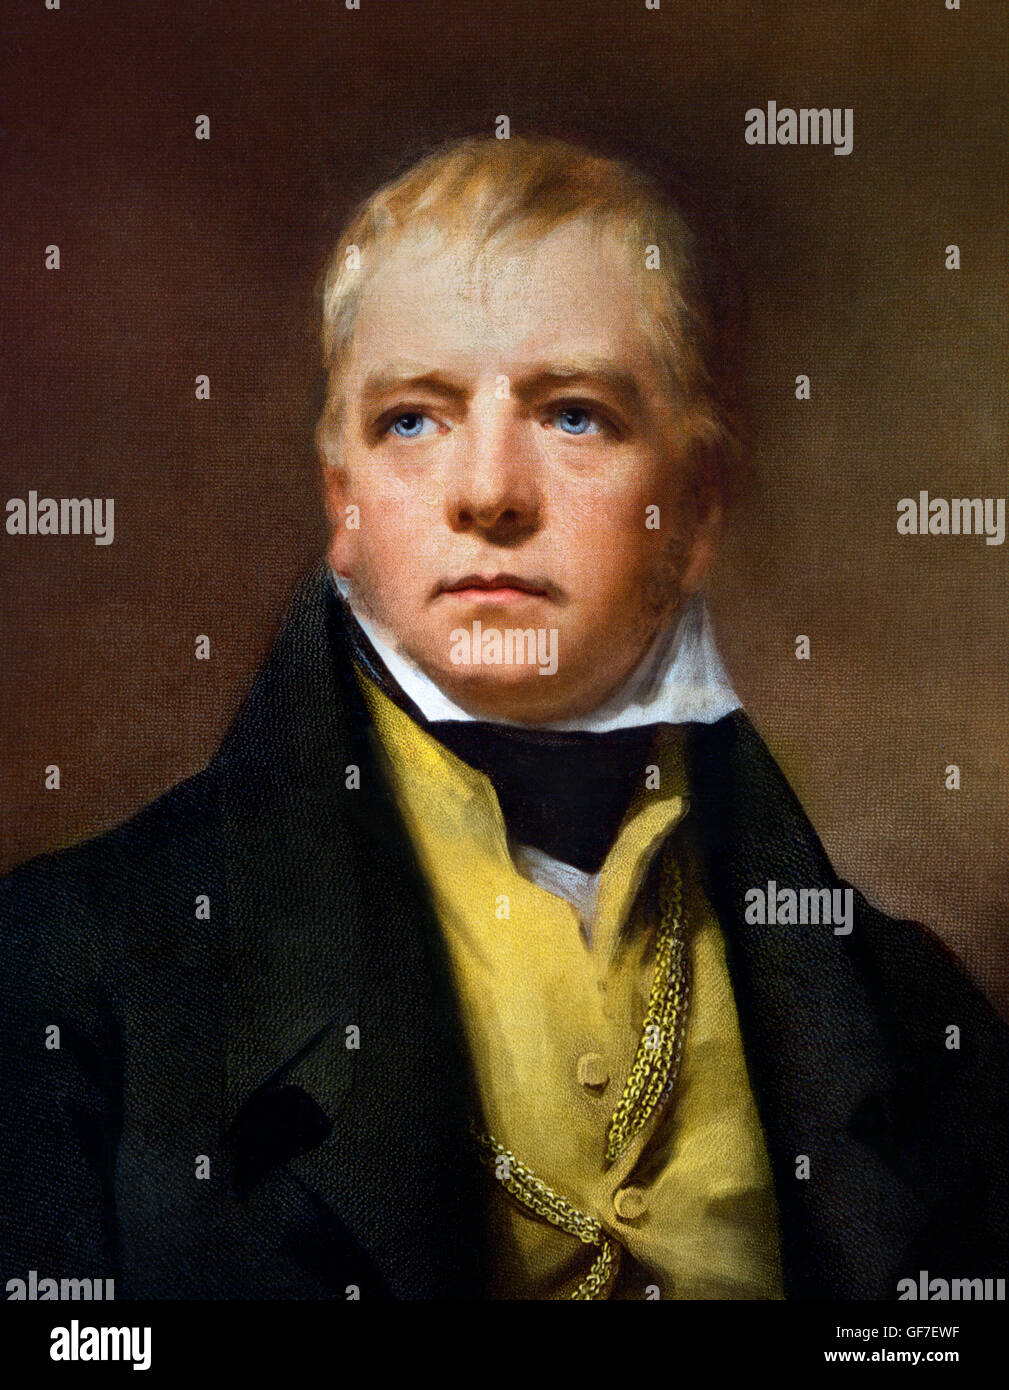 Sir Walter Scott. Portrait of the Scottish novelist Walter Scott (1771–1832) . Reproduction after a portrait by - Stock Image